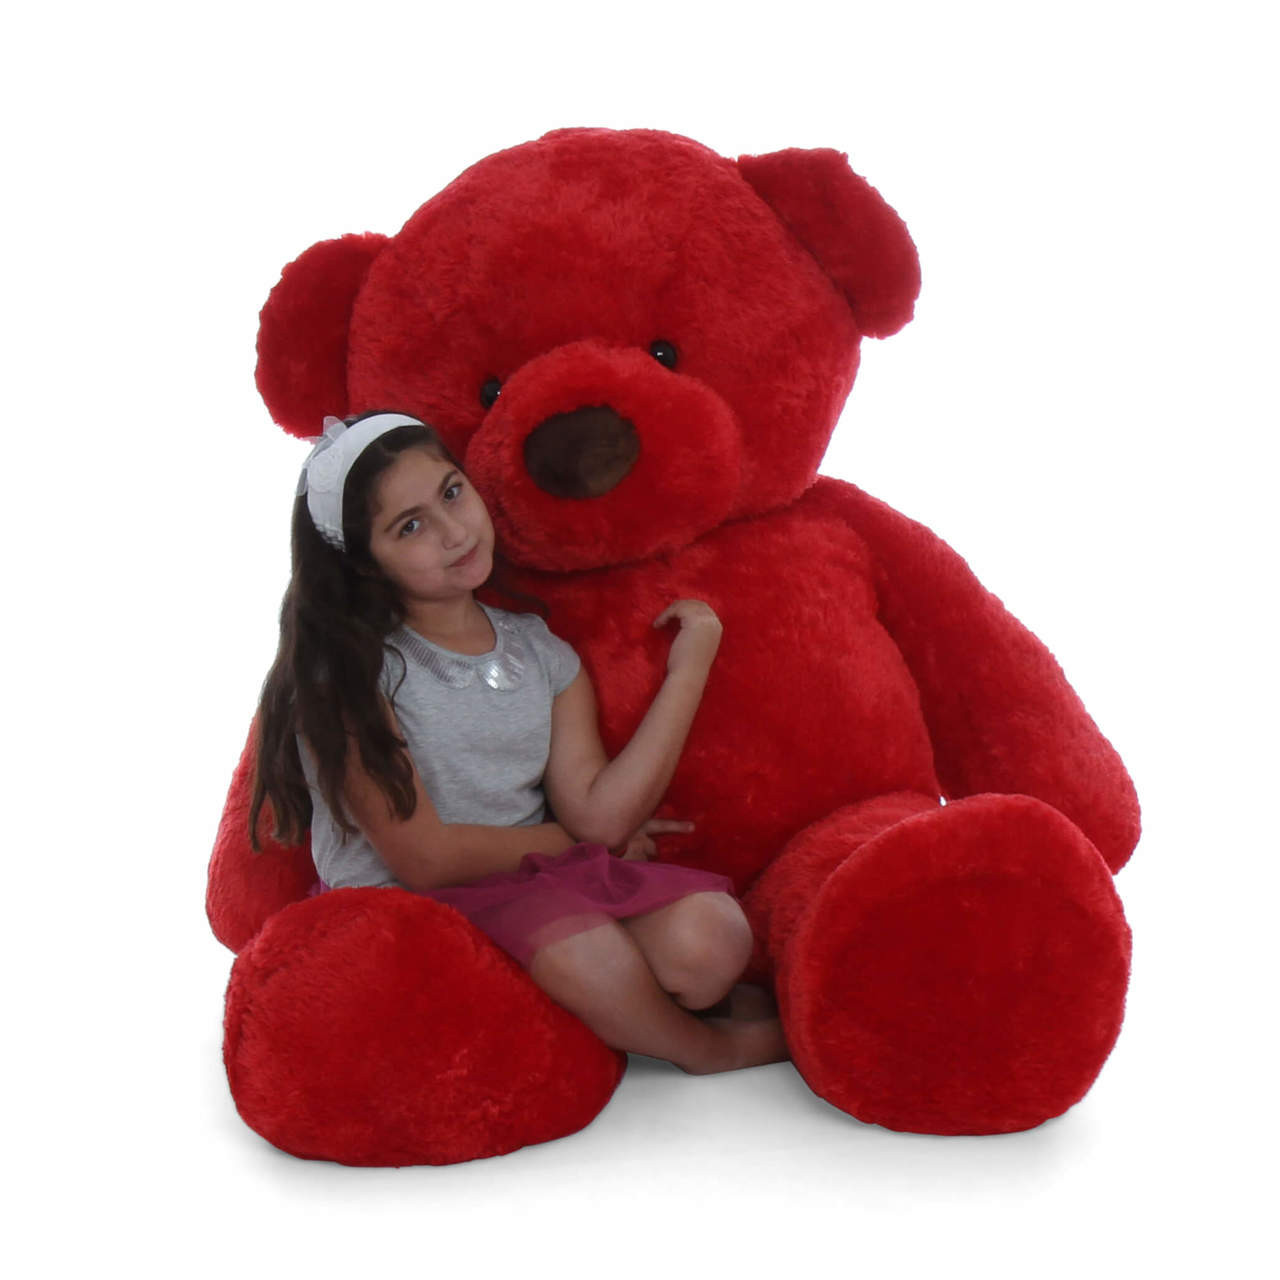 Life Size 72in Humongous Red Teddy Bear Riley Chubs By